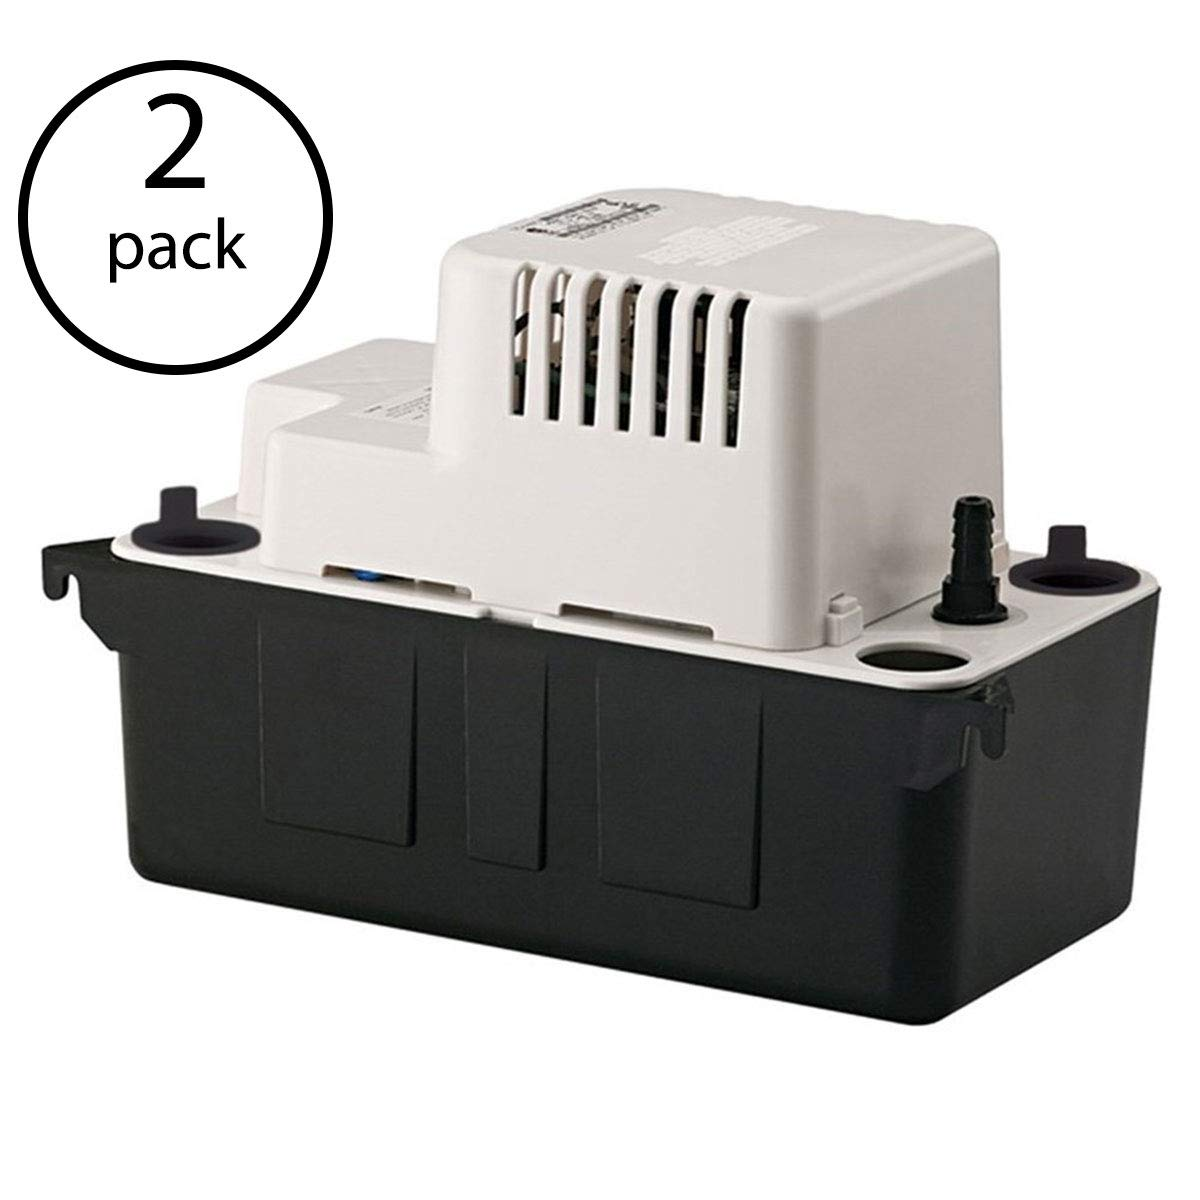 Little Giant VCMA-20ULS 1/30 HP 1/2 ABS Gallon Tank Condensate Removal Pump (2 Pack)